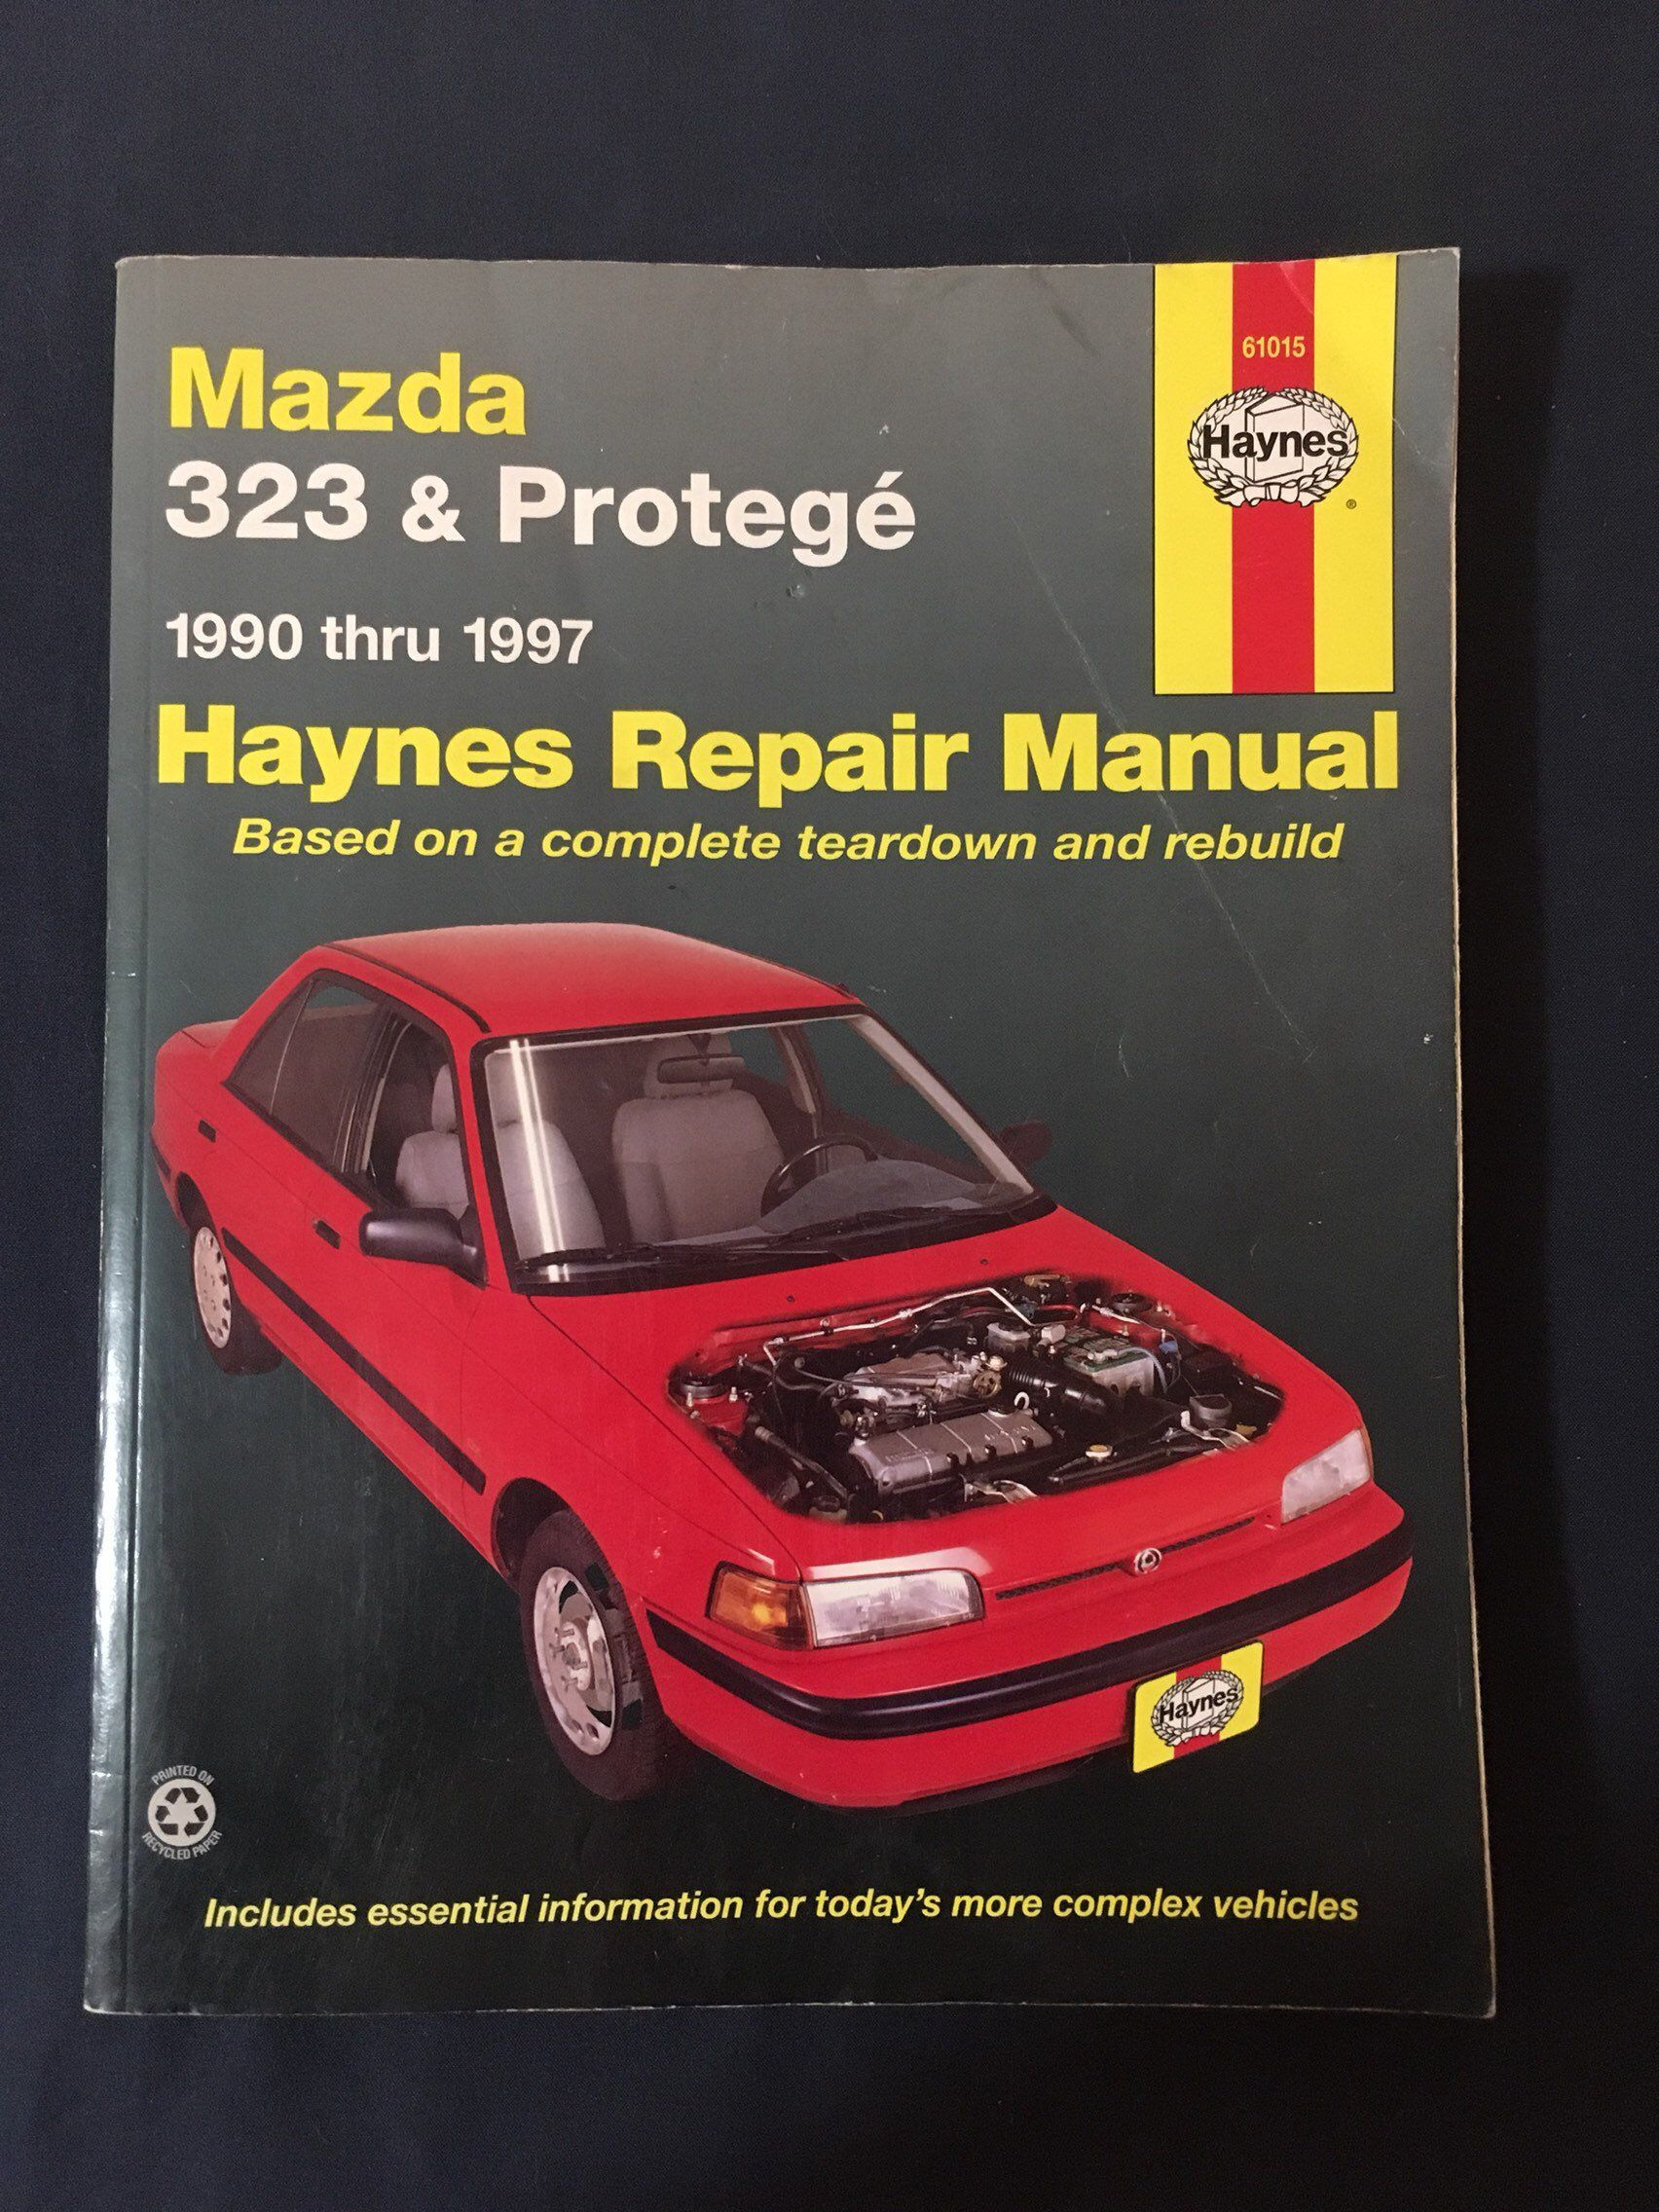 #canadiancollectors Haynes Repair Manual , Mazda 323 and Protege 1990 thru  1997 - 1997 release $33.98